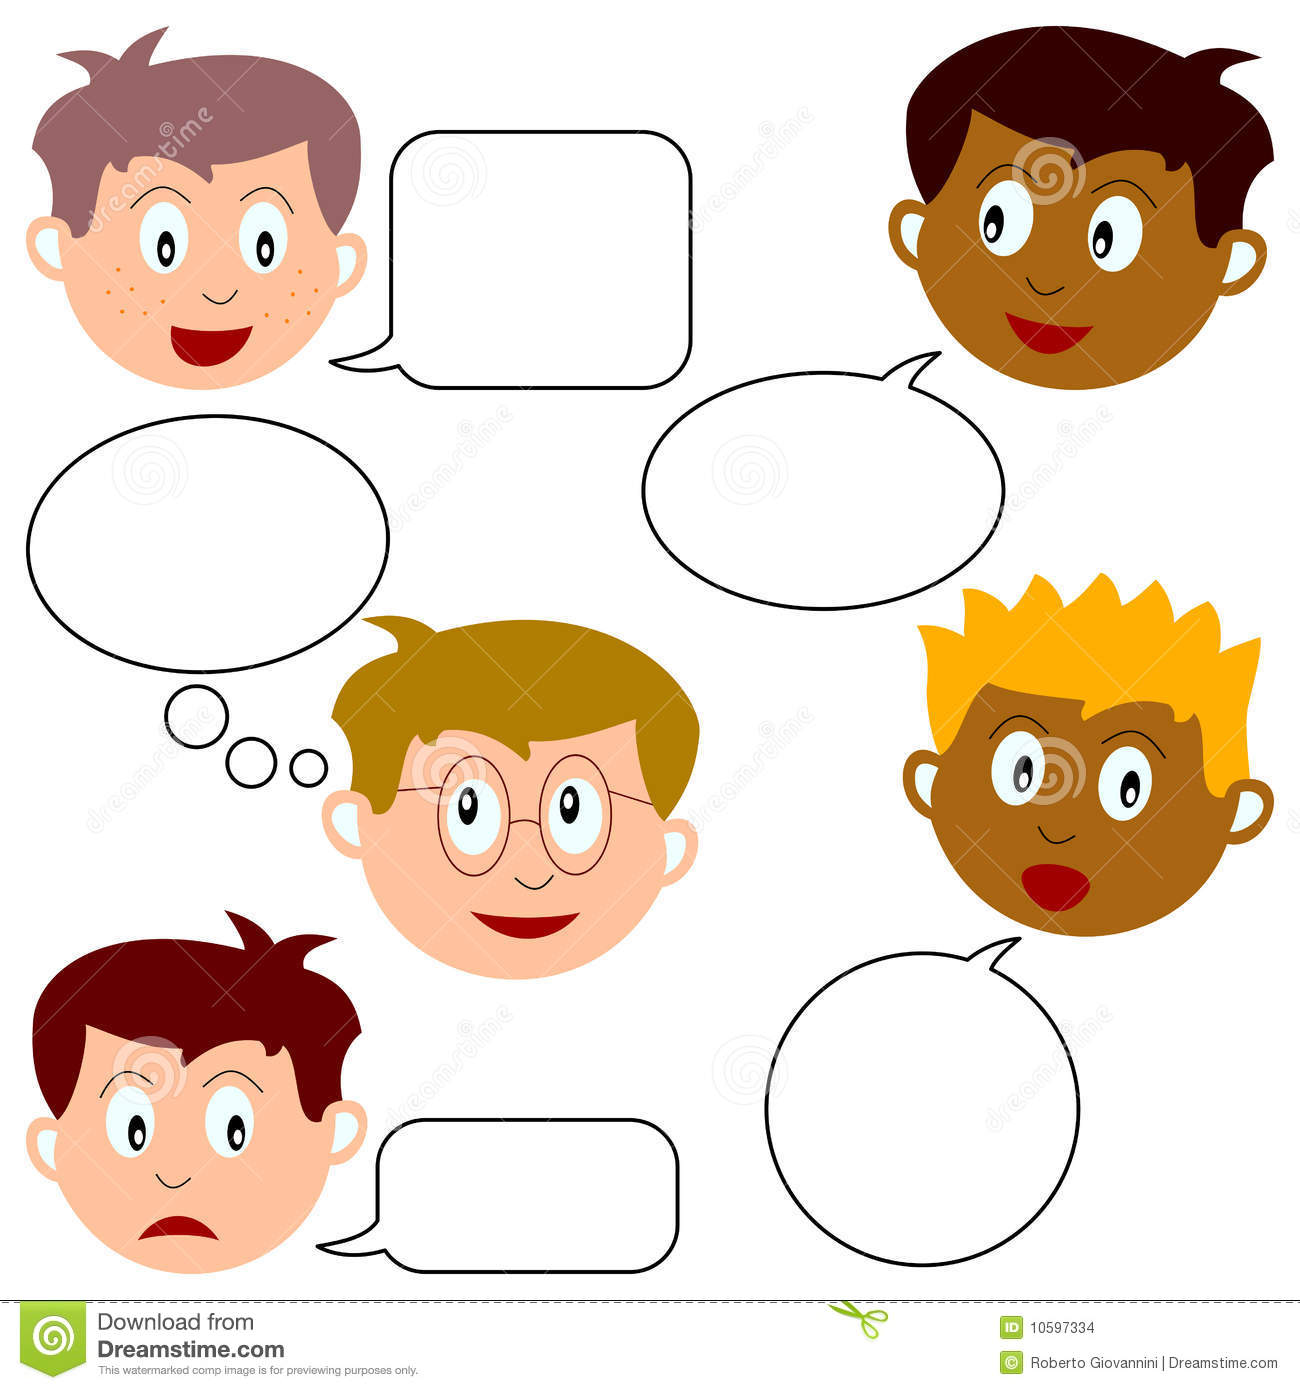 2020 Other | Images: Kids Speaking Clipart